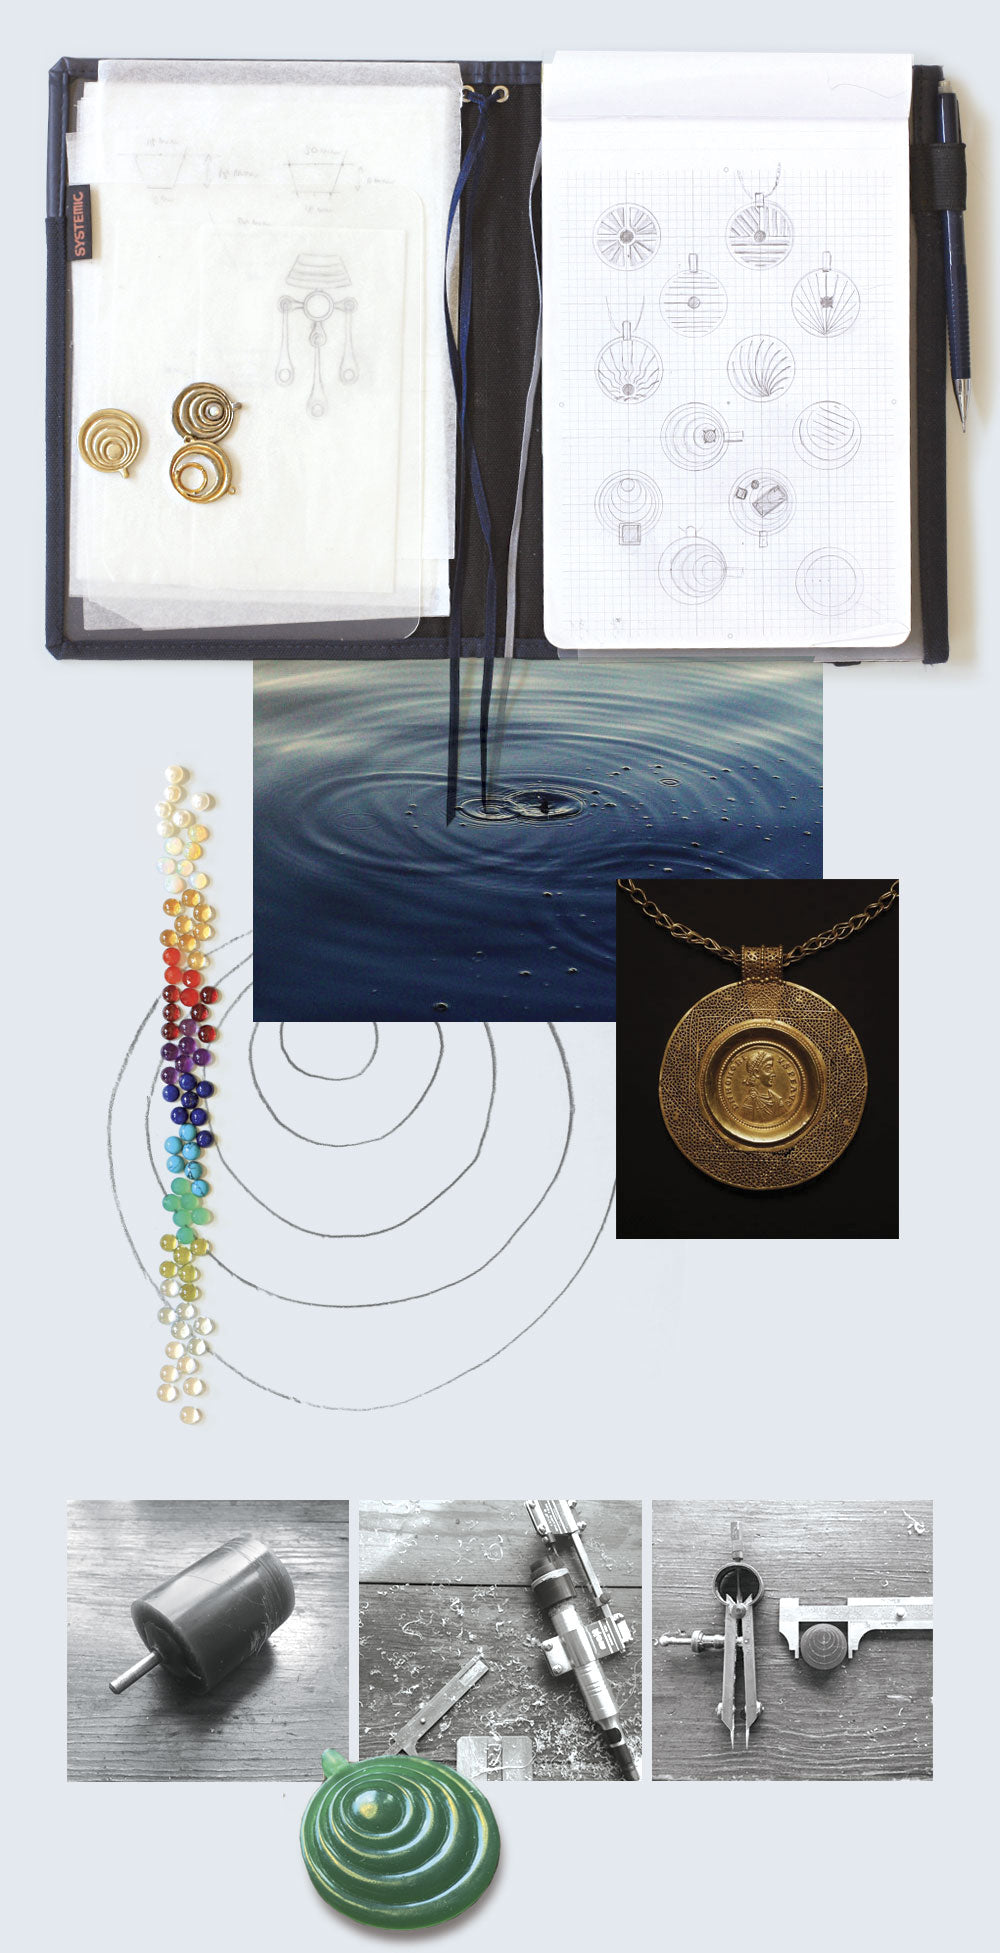 medallion necklace inspiration process